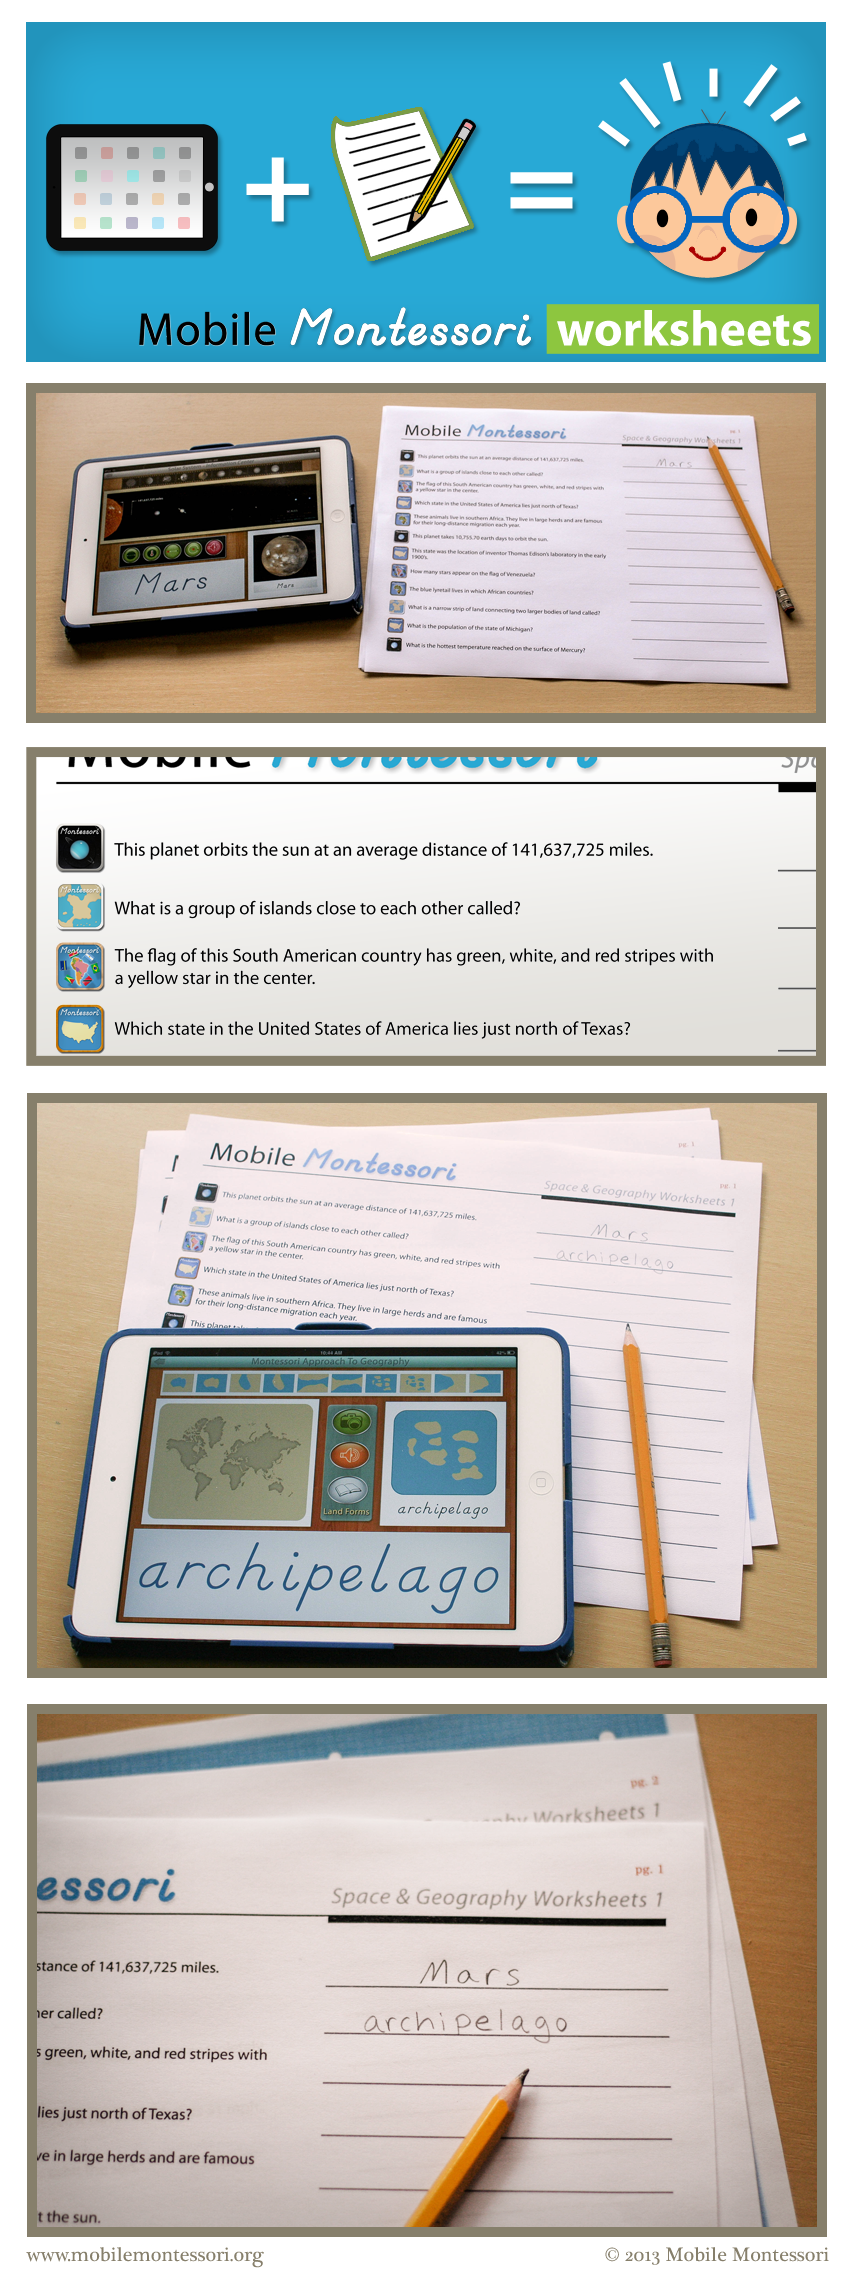 Free Printable Worksheets For Children To Perform Research Using